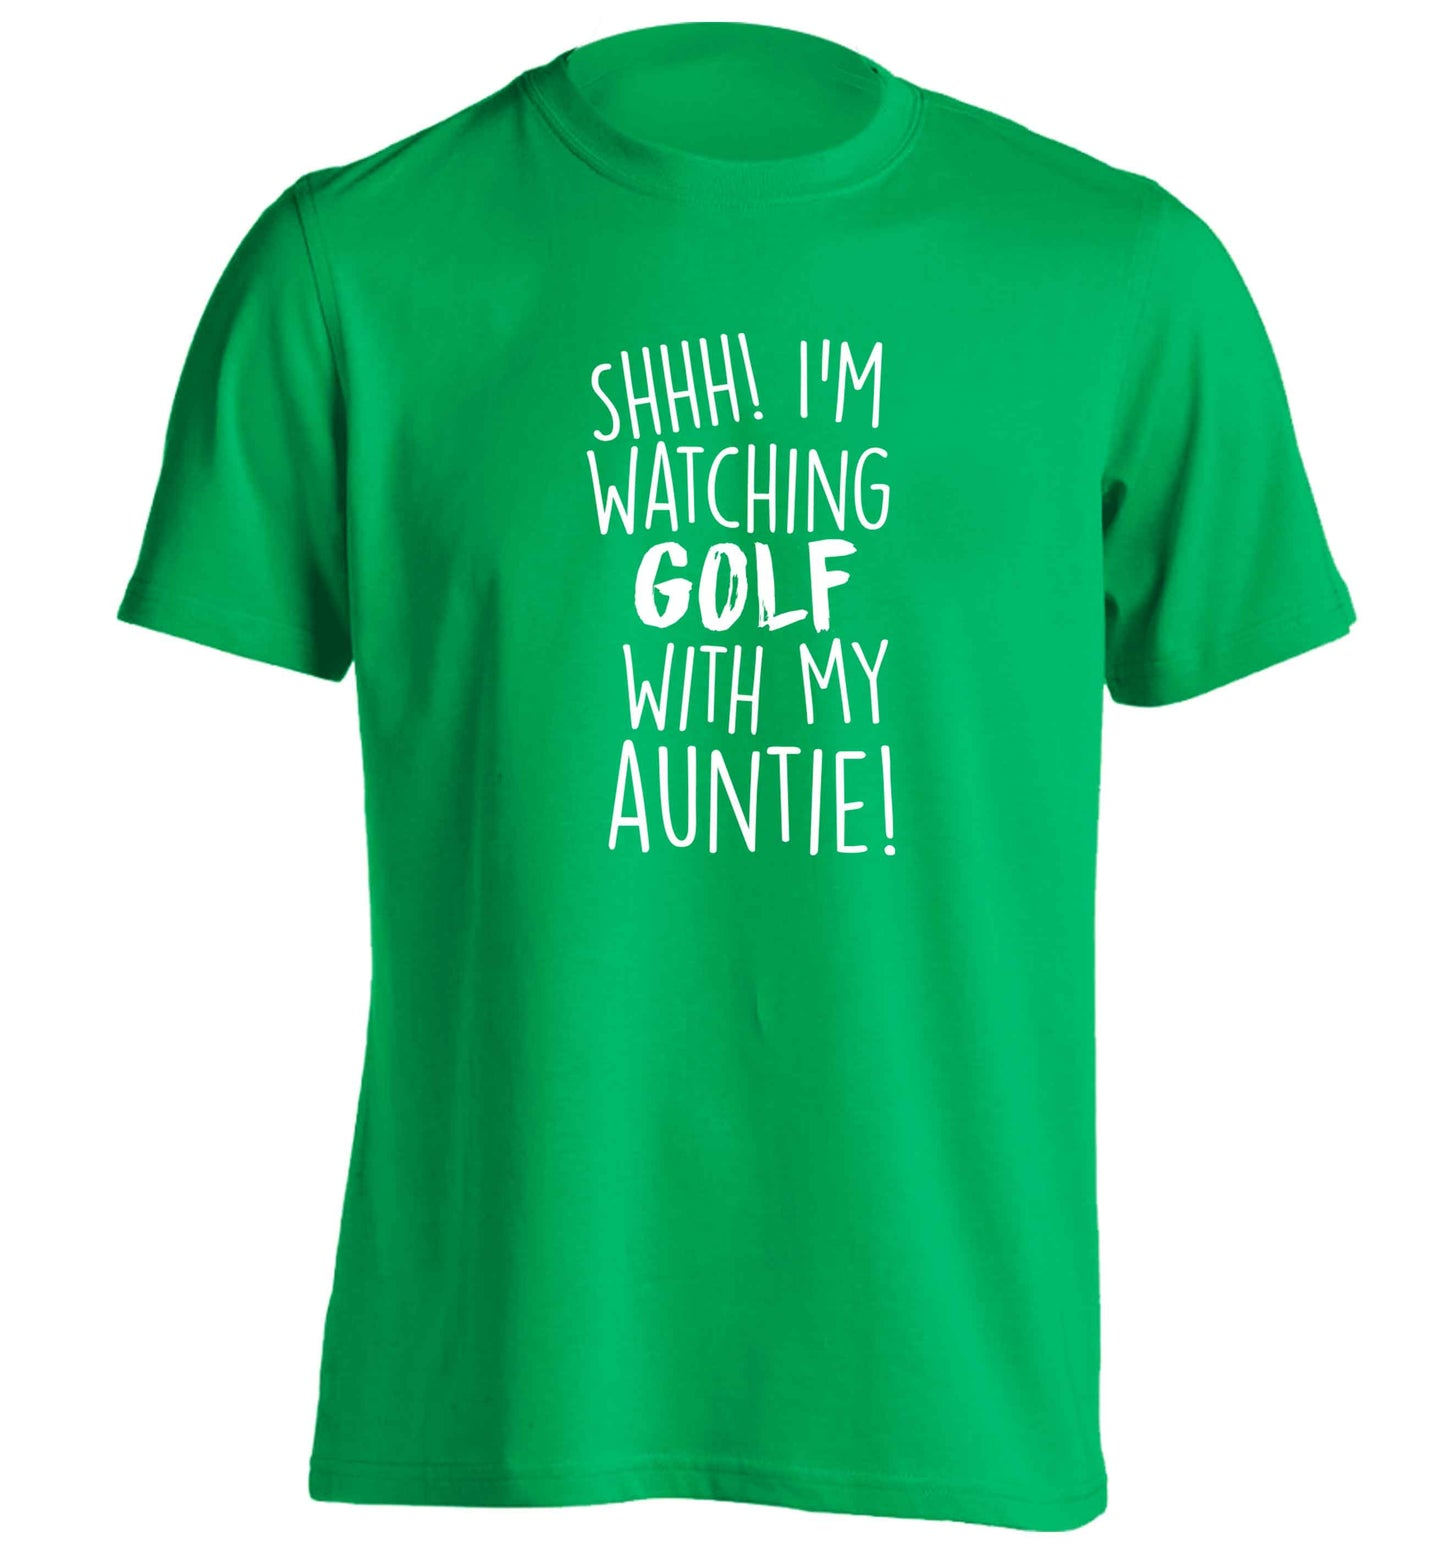 Shh I'm watching golf with my auntie adults unisex green Tshirt 2XL